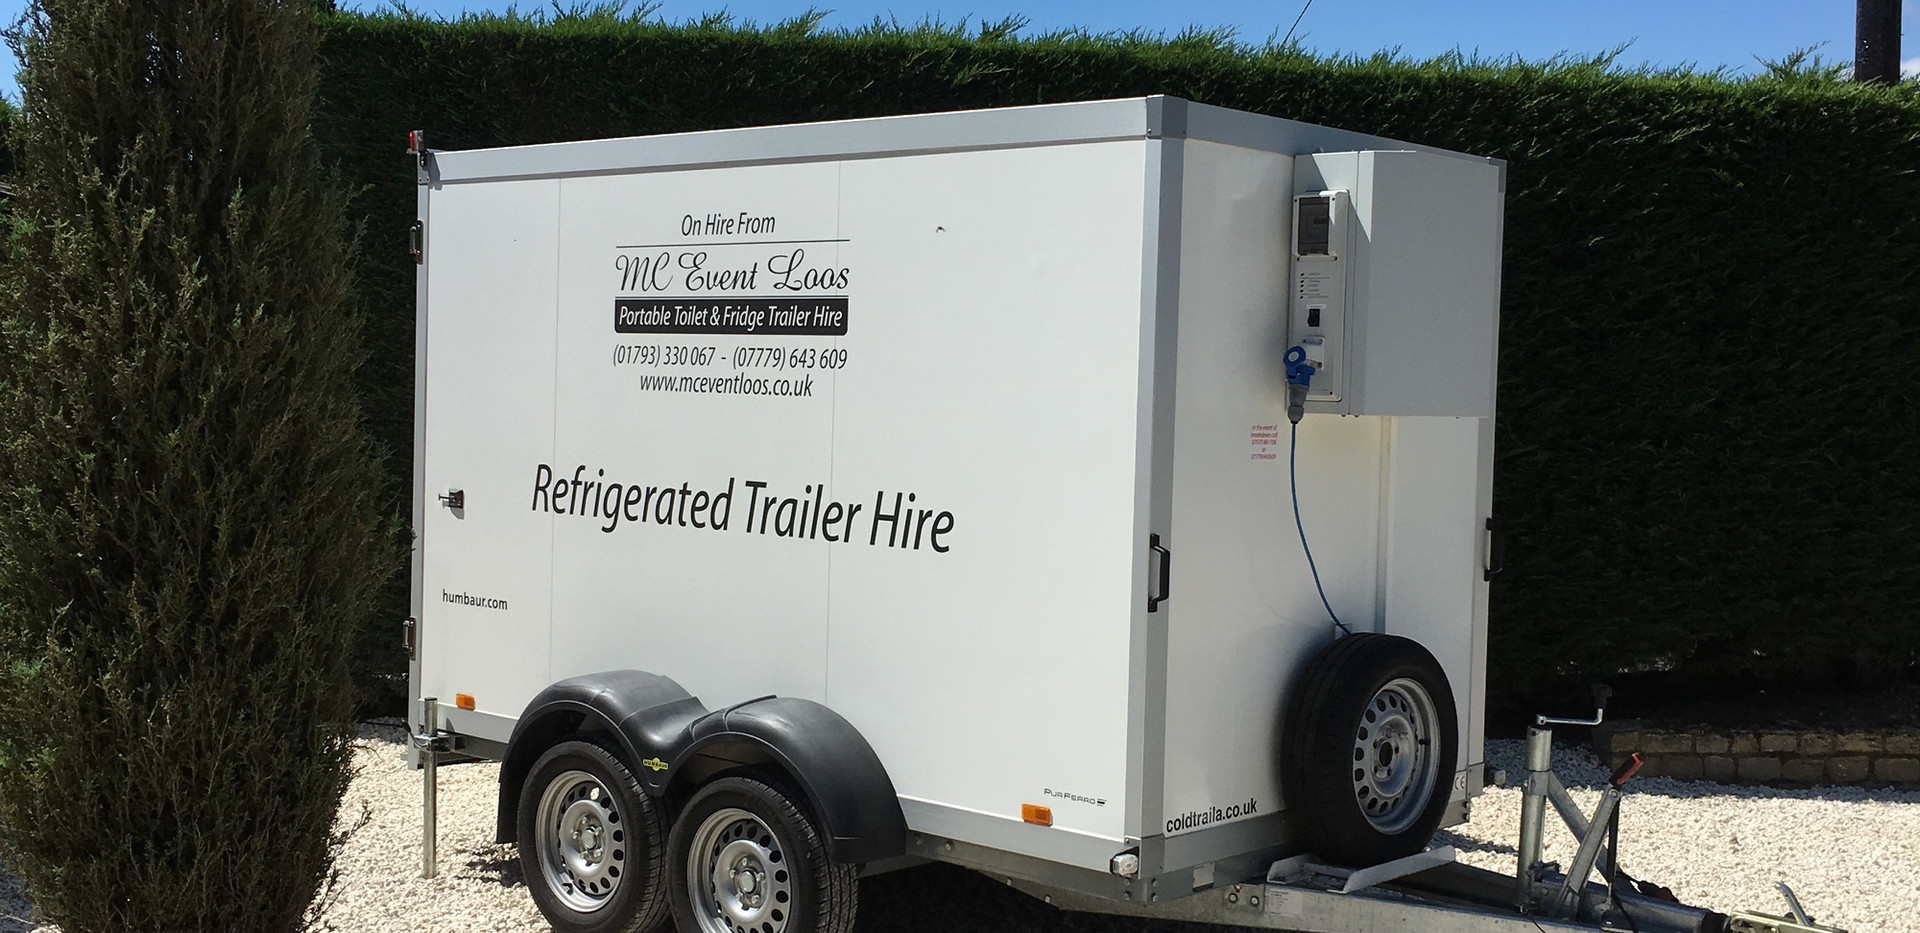 Refrigerated trailer hire weddings corpo